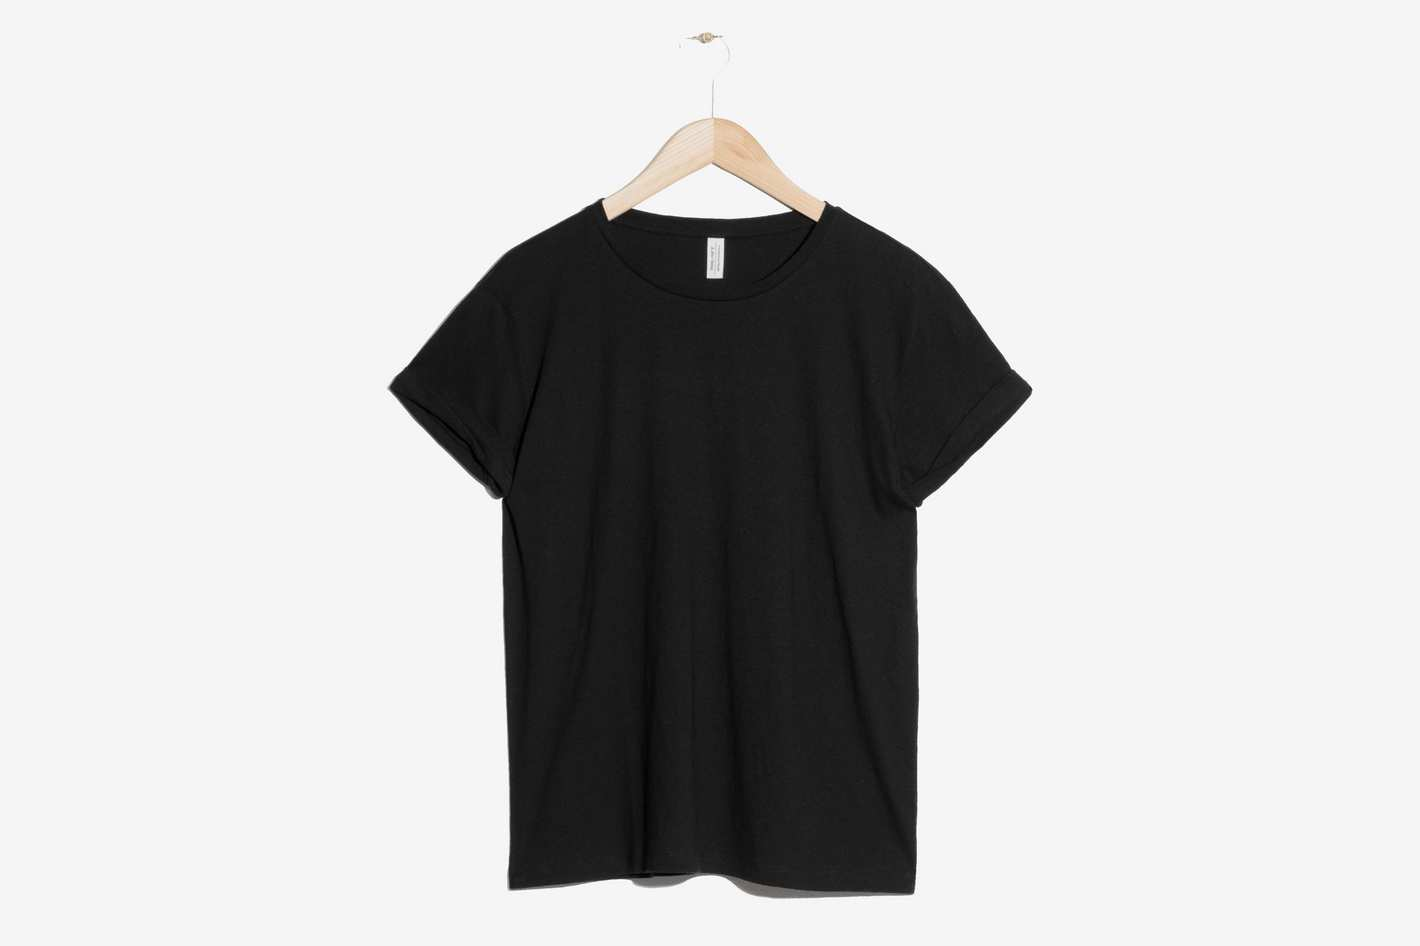 b189ddaa22a1d Best rolled-sleeve black T-shirt.   Other Stories Cotton Tee